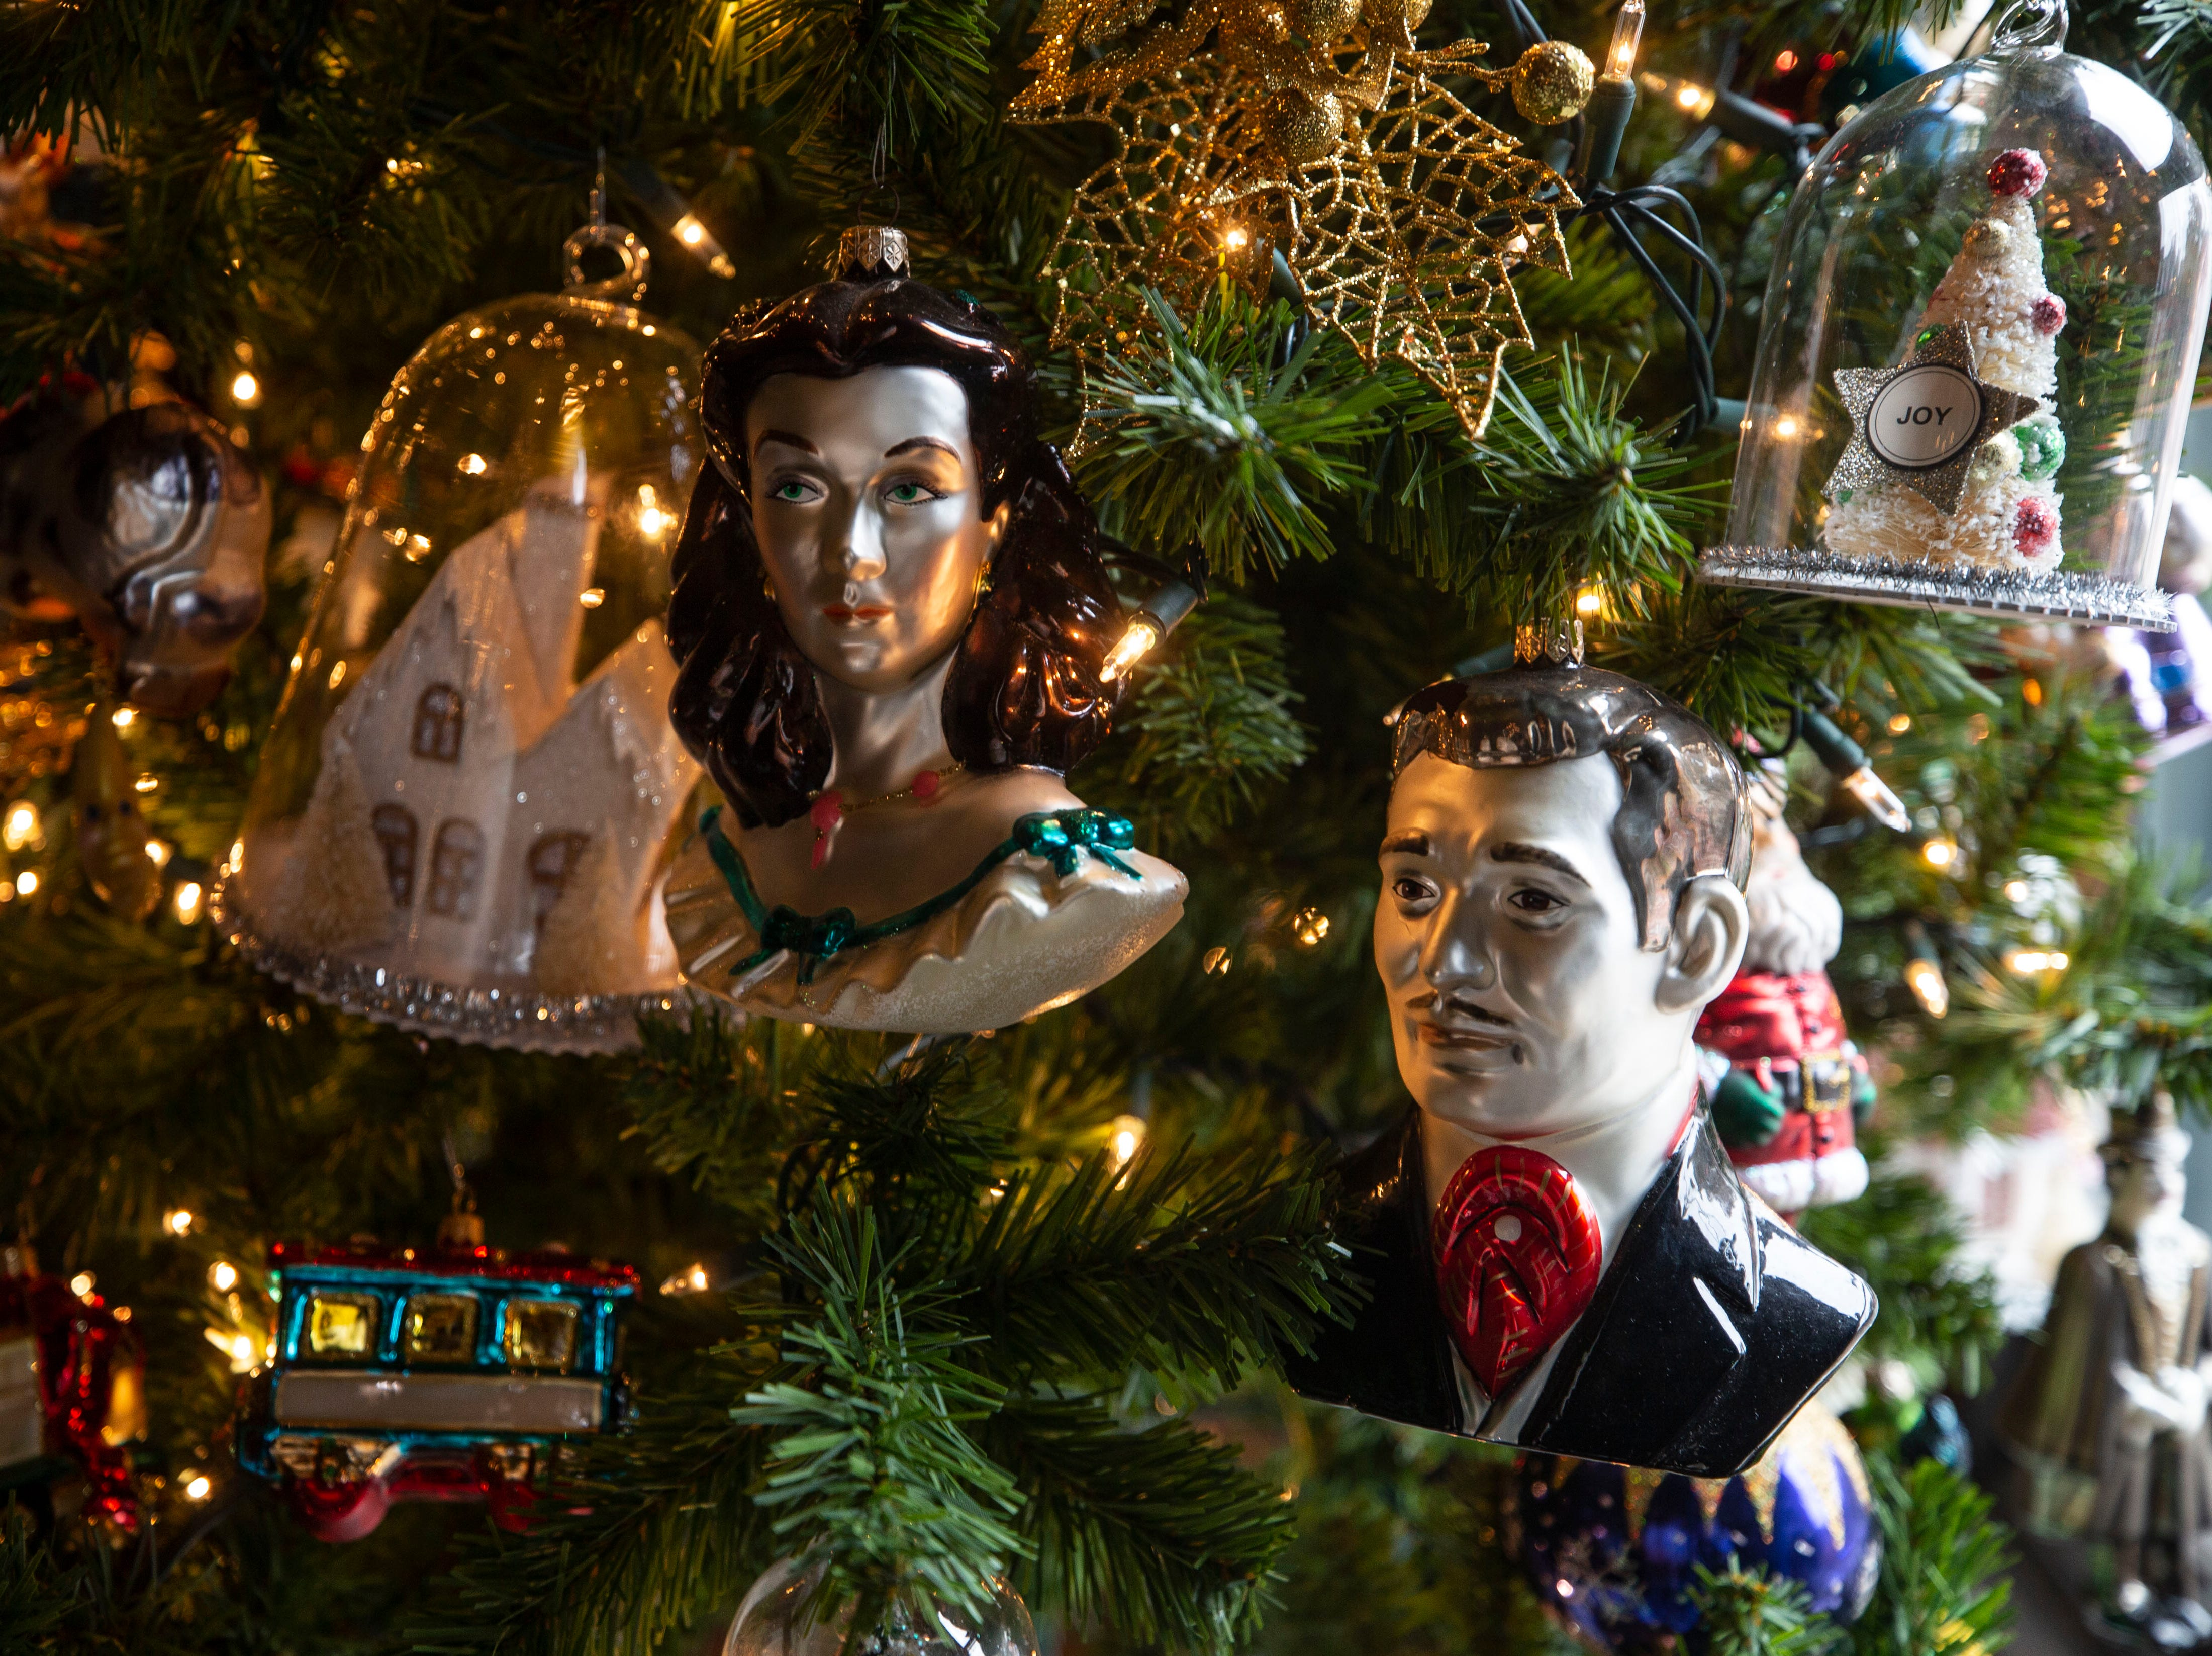 David Brown is a fan of Gone With The Wind, so you'll find a few homages to the movie in the ornaments as well as his home.